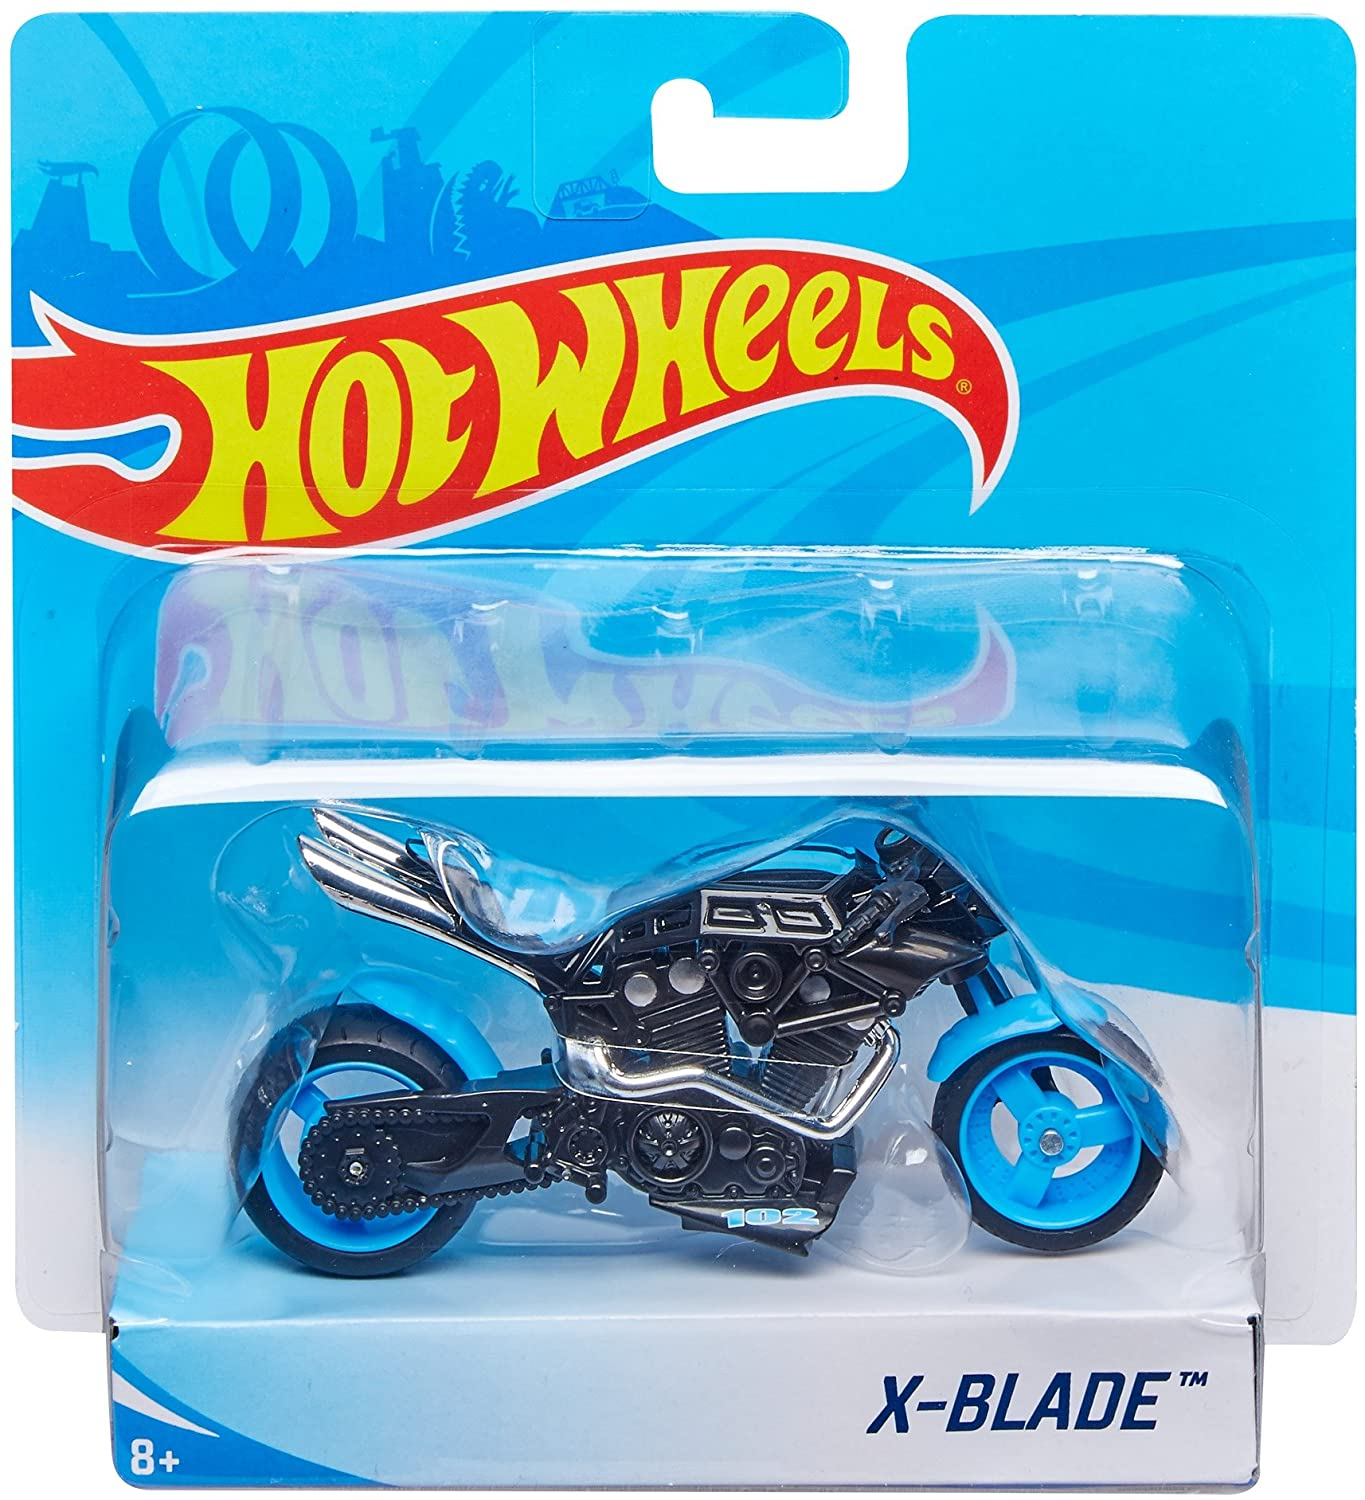 Hot Wheels - Motos Street Power 1/18 Surtido - Motos Juguete - (Mattel X4221)